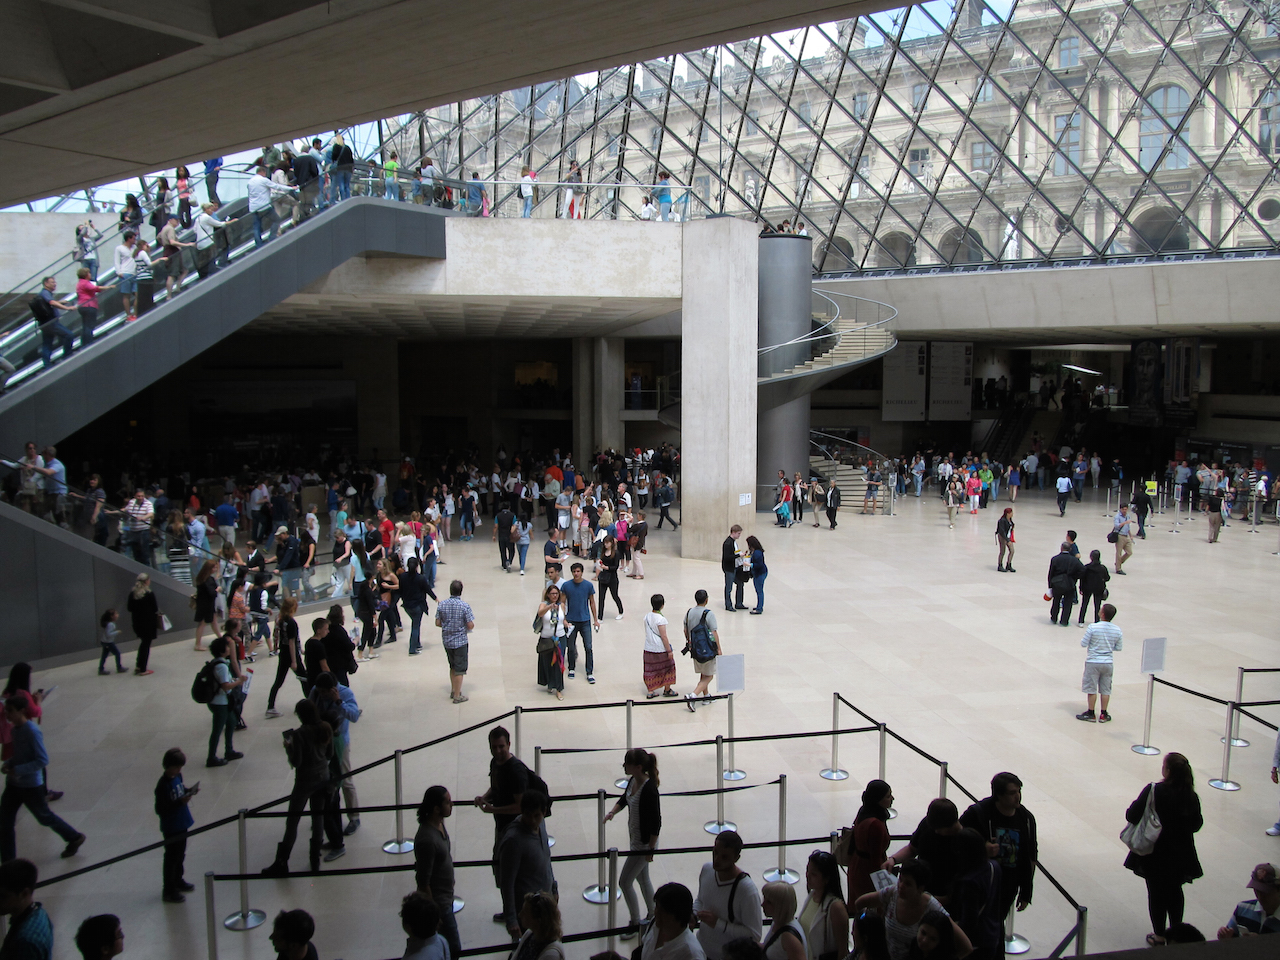 The lobby of the Louvre (photo by daryl_mitchell/Flickr)